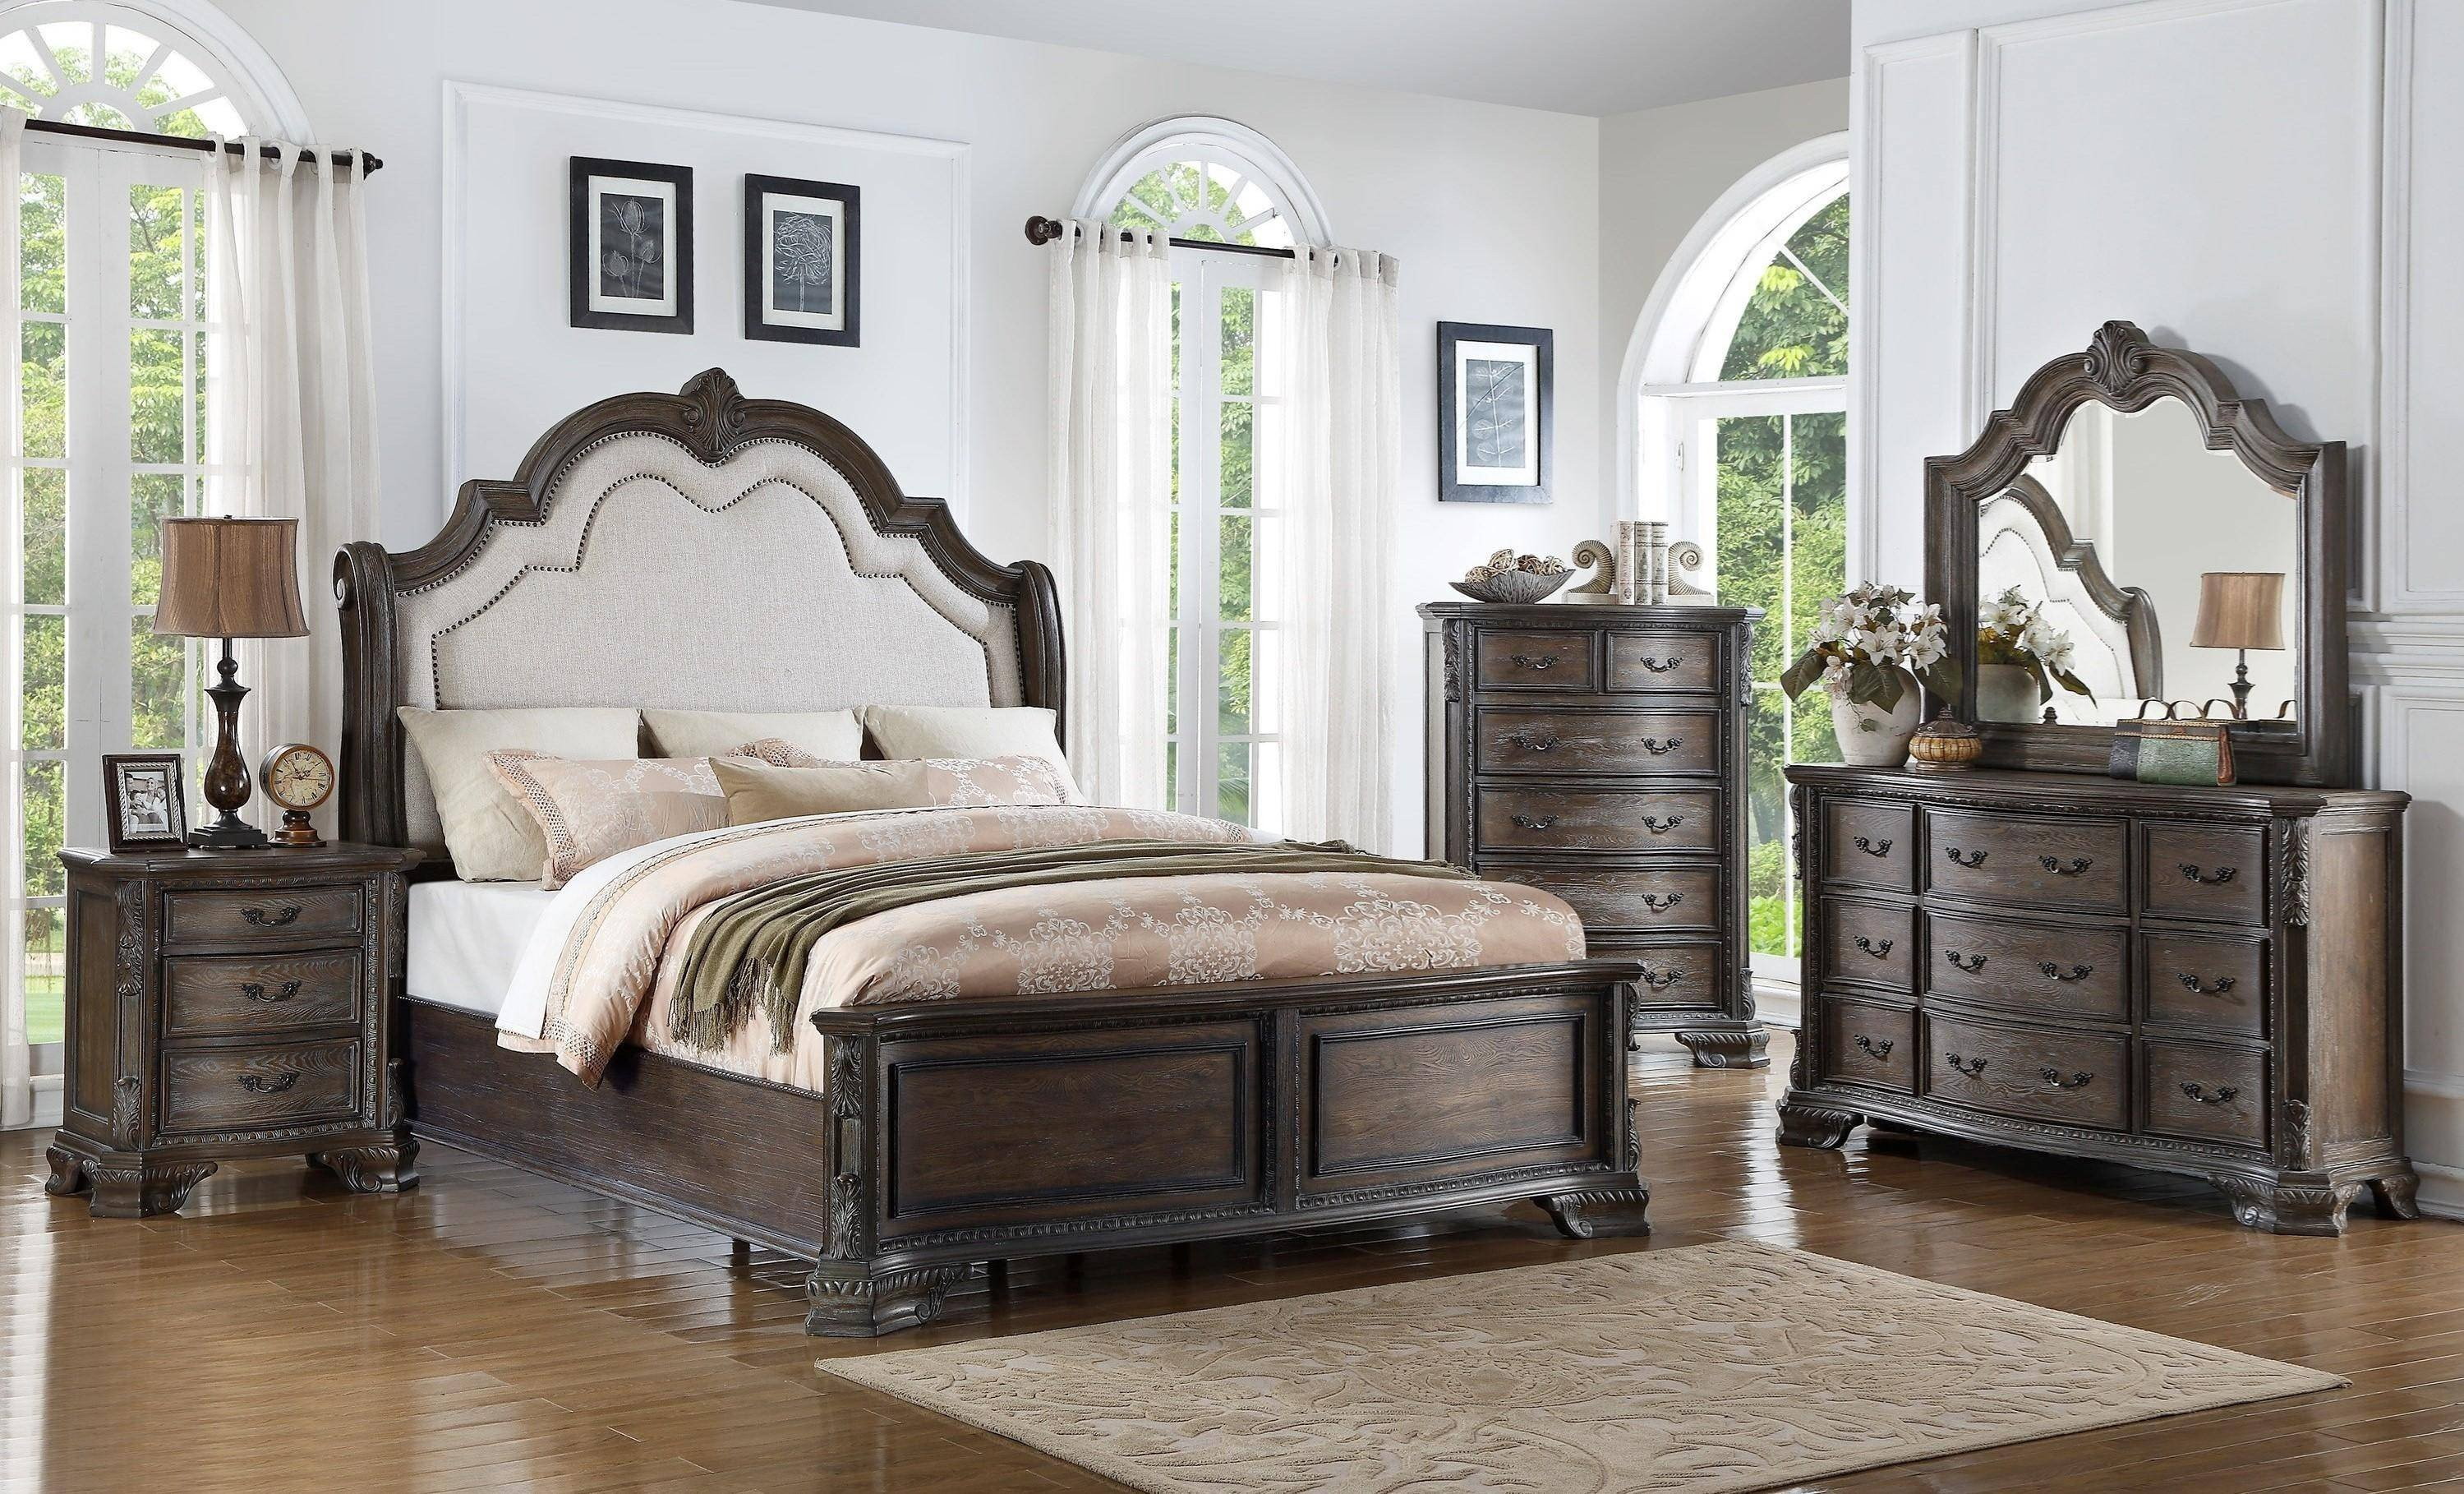 King Size Bedroom Set for Sale Beautiful Crown Mark B1120 Sheffield Queen Panel Bed In Gray Fabric